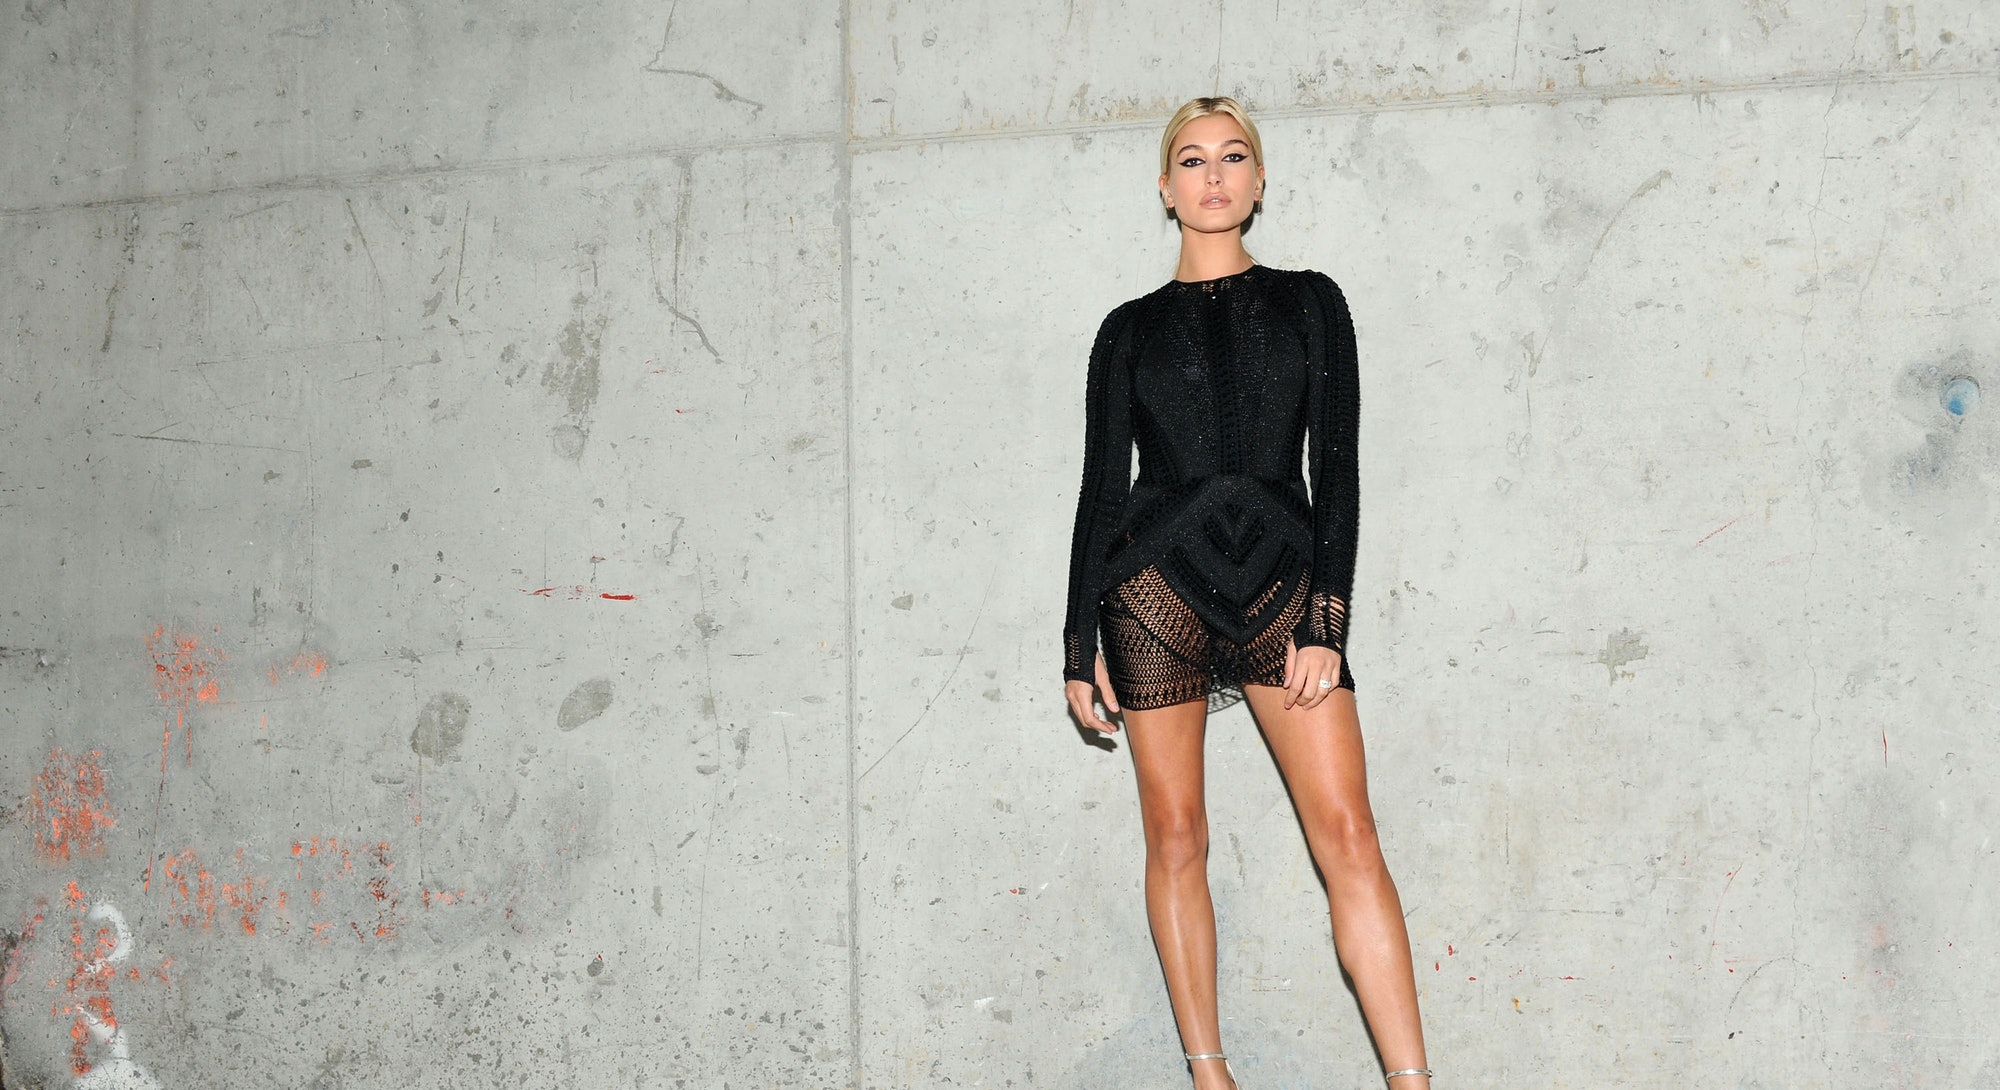 Hailey Bieber poses on red carpet